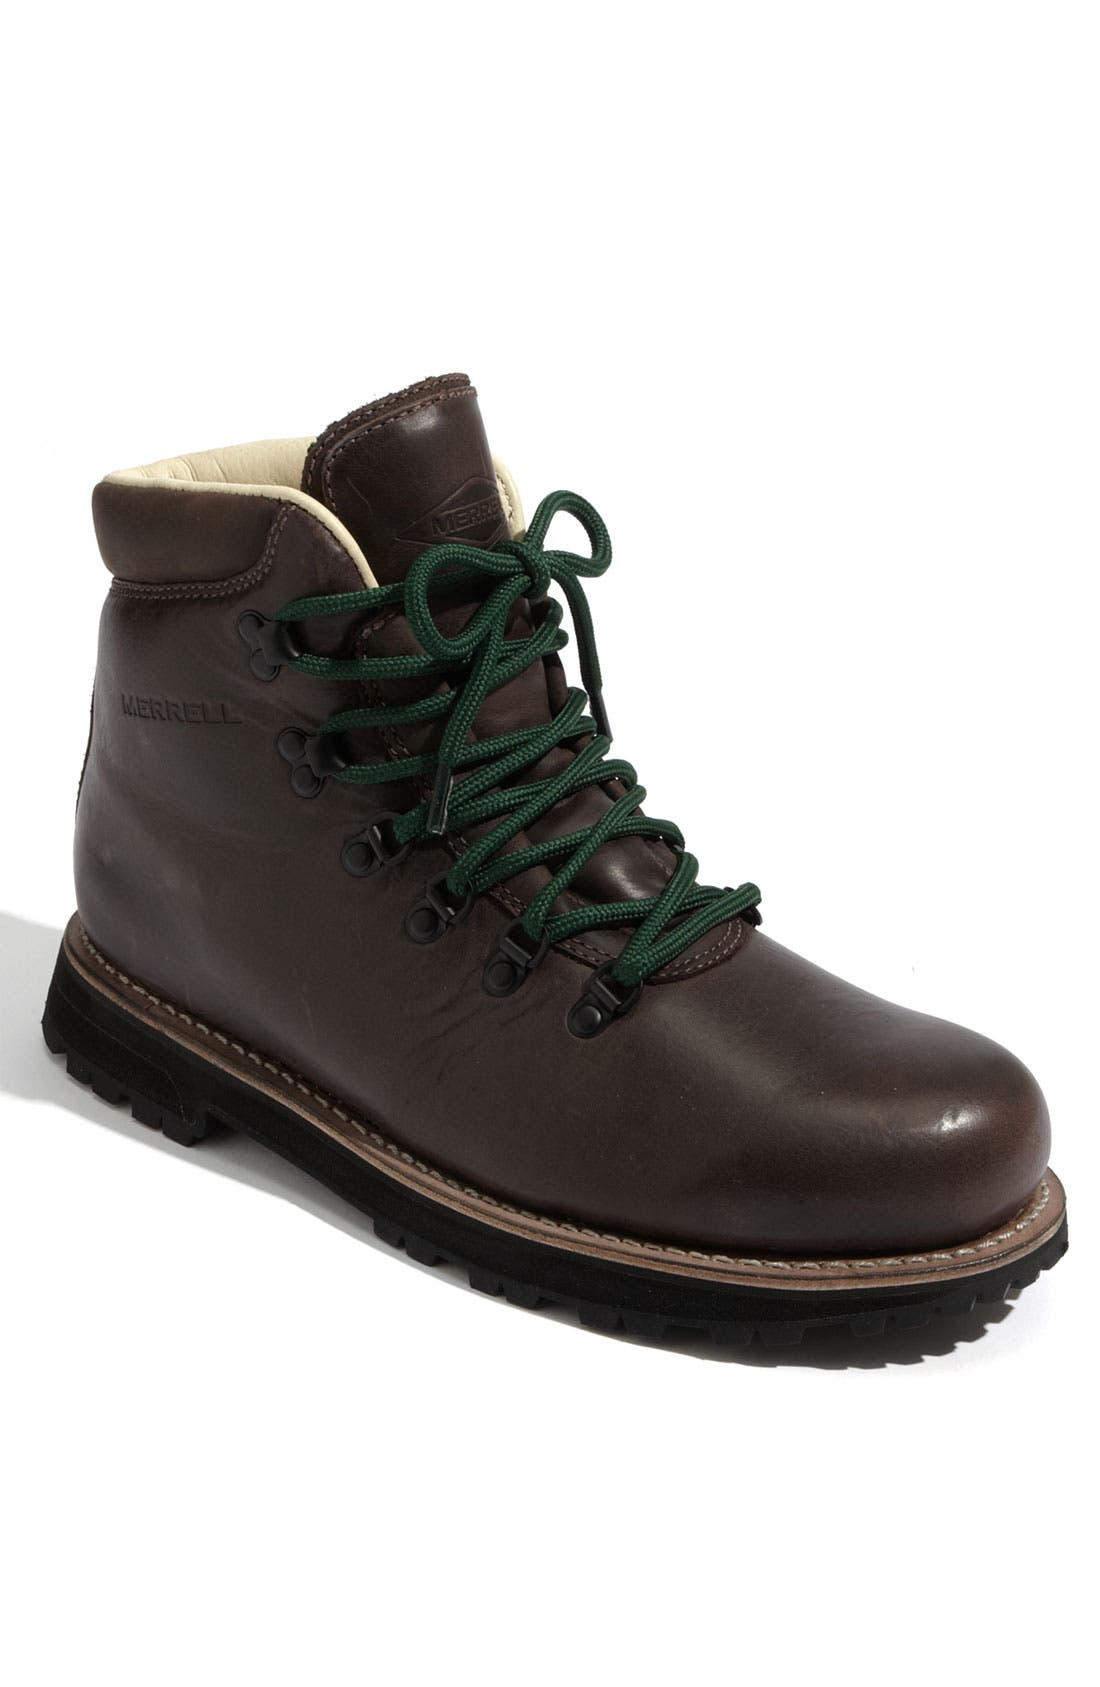 Alternate Image 1 Selected - Merrell 'Wilderness Canyon' Boot (Men)